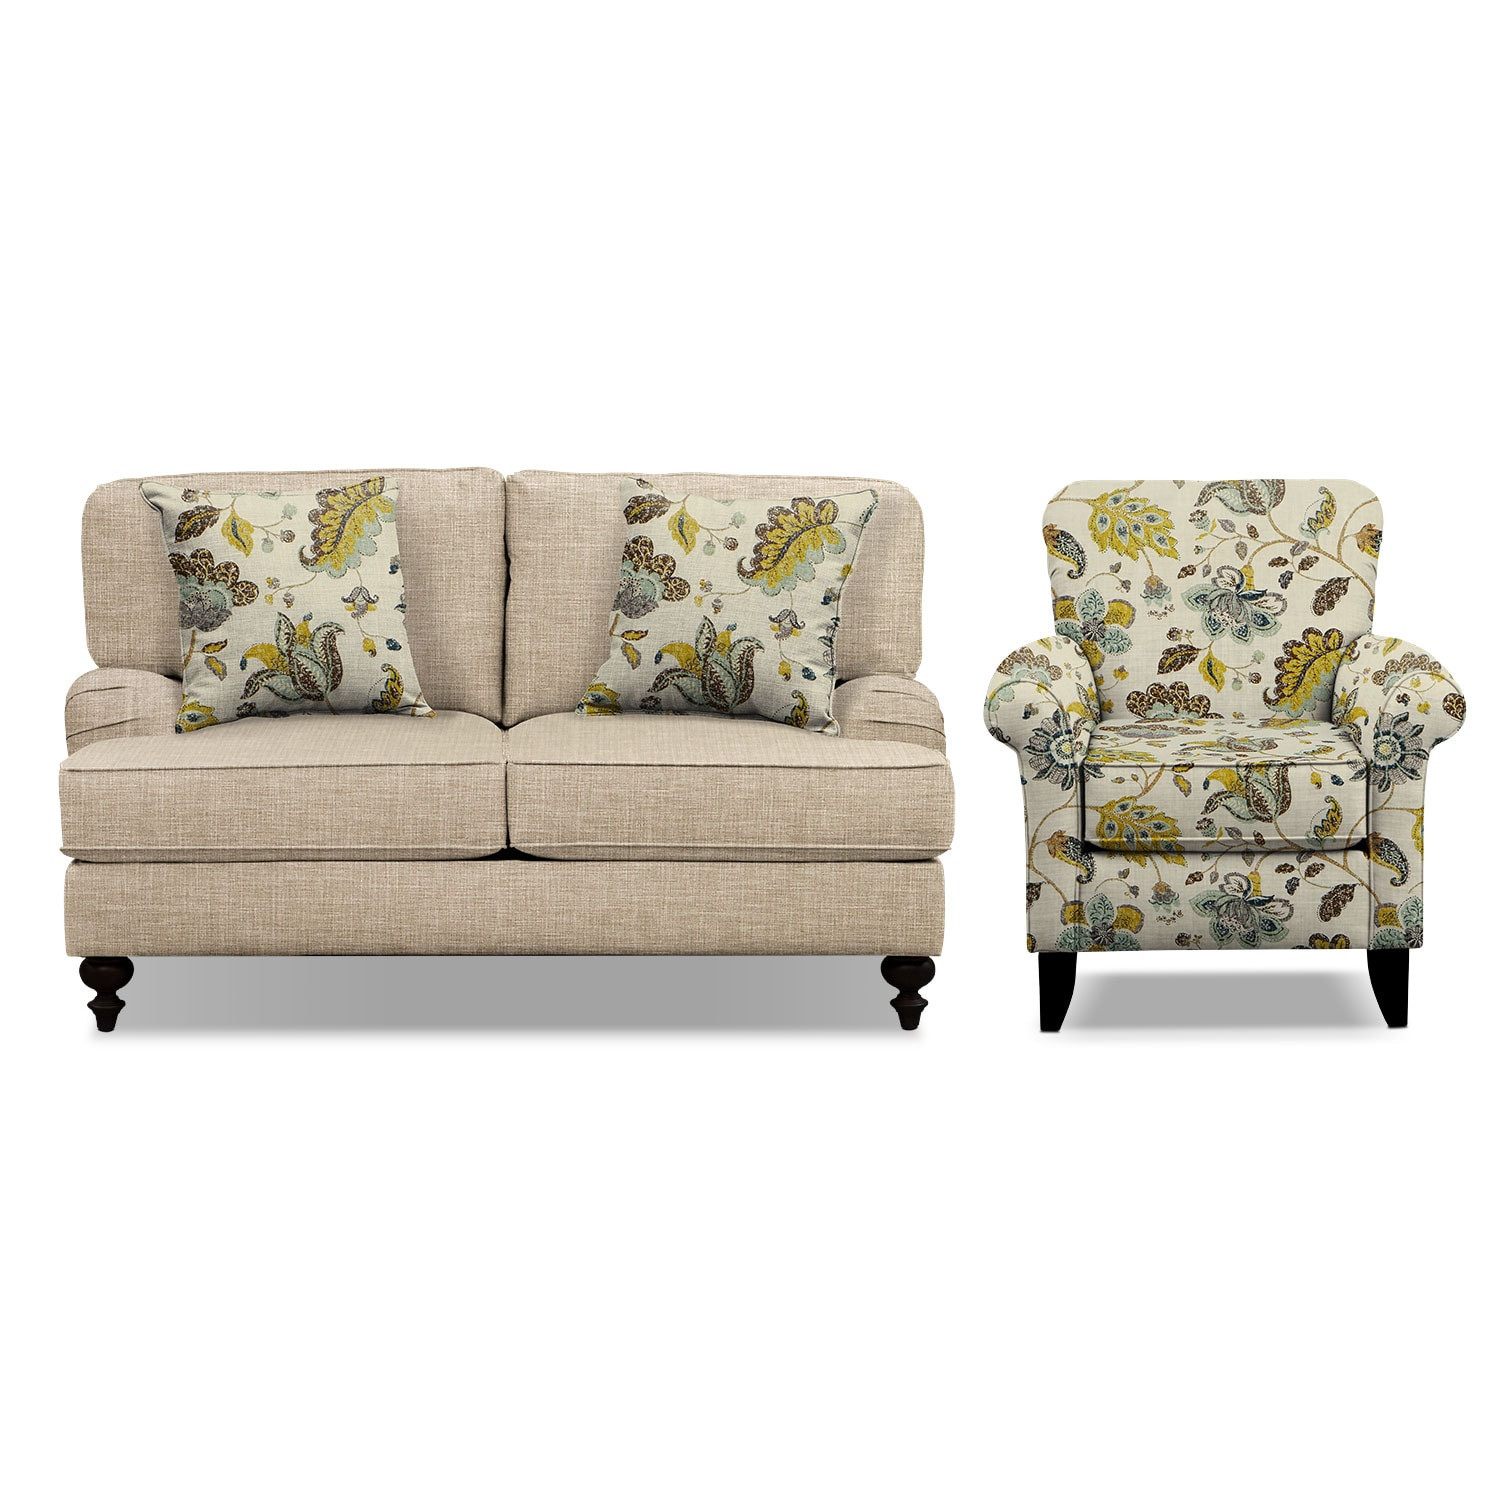 "Living Room Furniture - Avery Taupe 62"" Memory Foam Sleeper Sofa and Accent Chair Set"